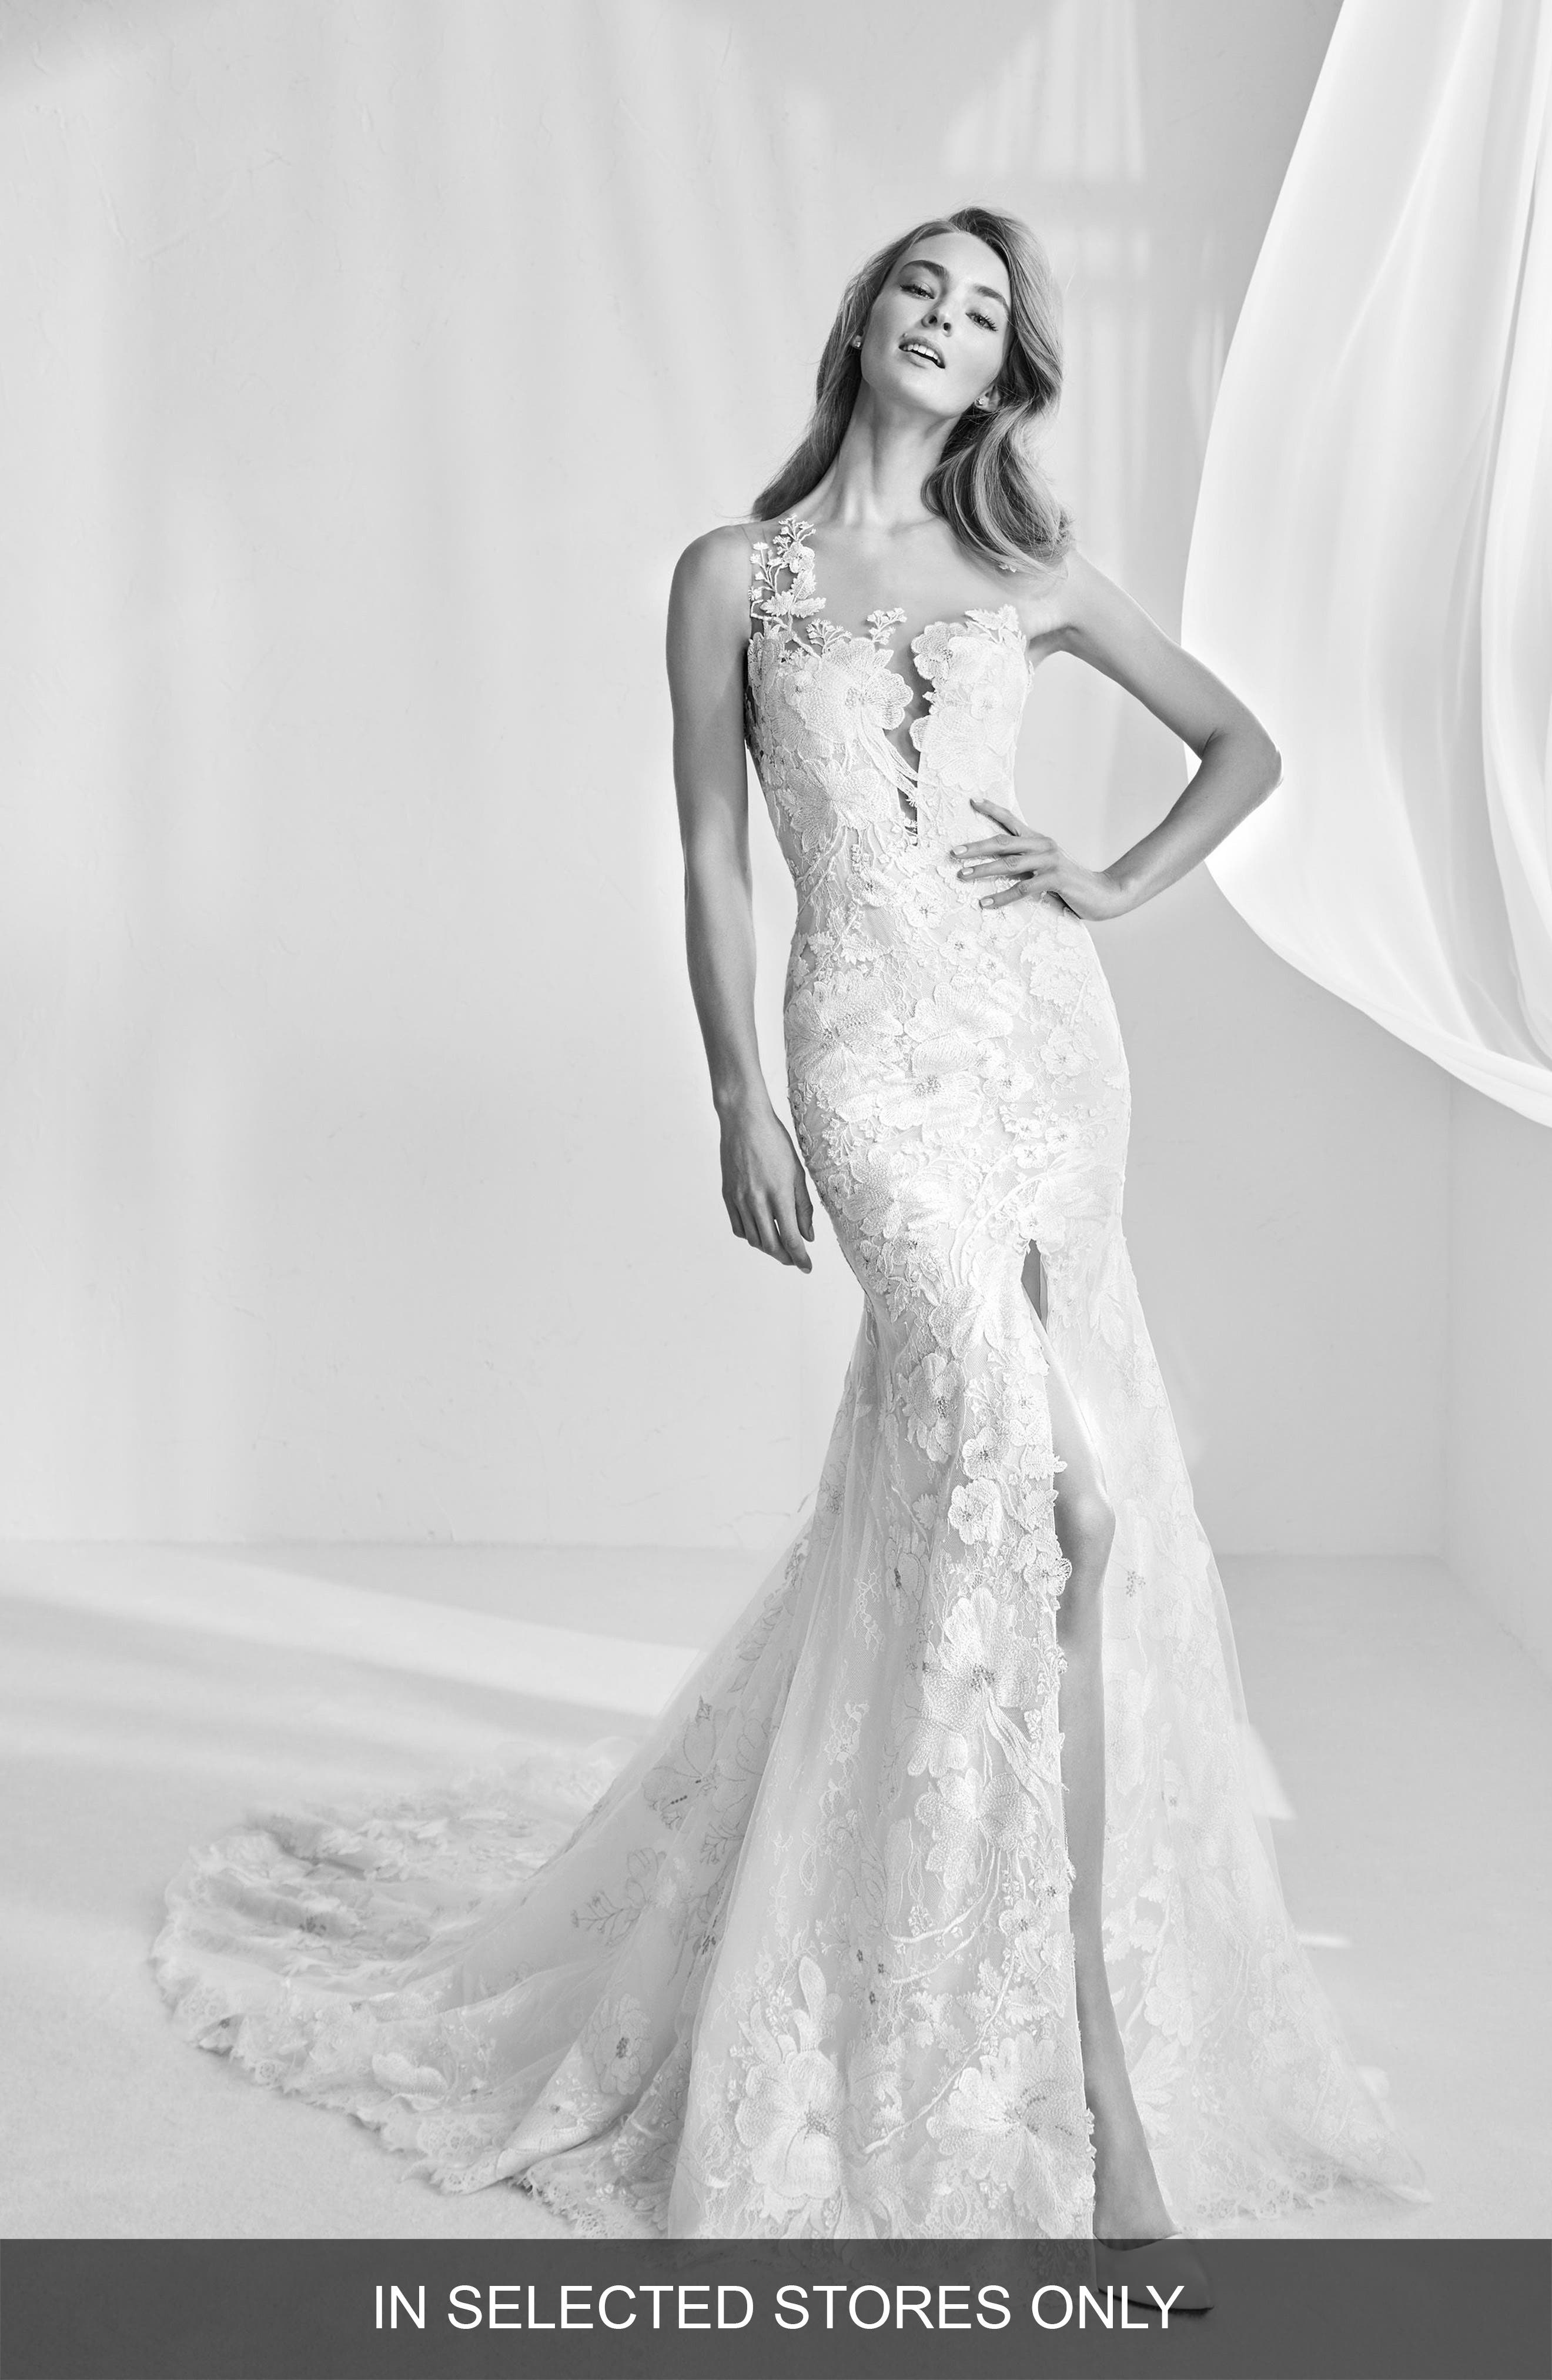 Alternate Image 1 Selected - Atelier Pronovias Ranisa Embroidered Lace Mermaid Gown